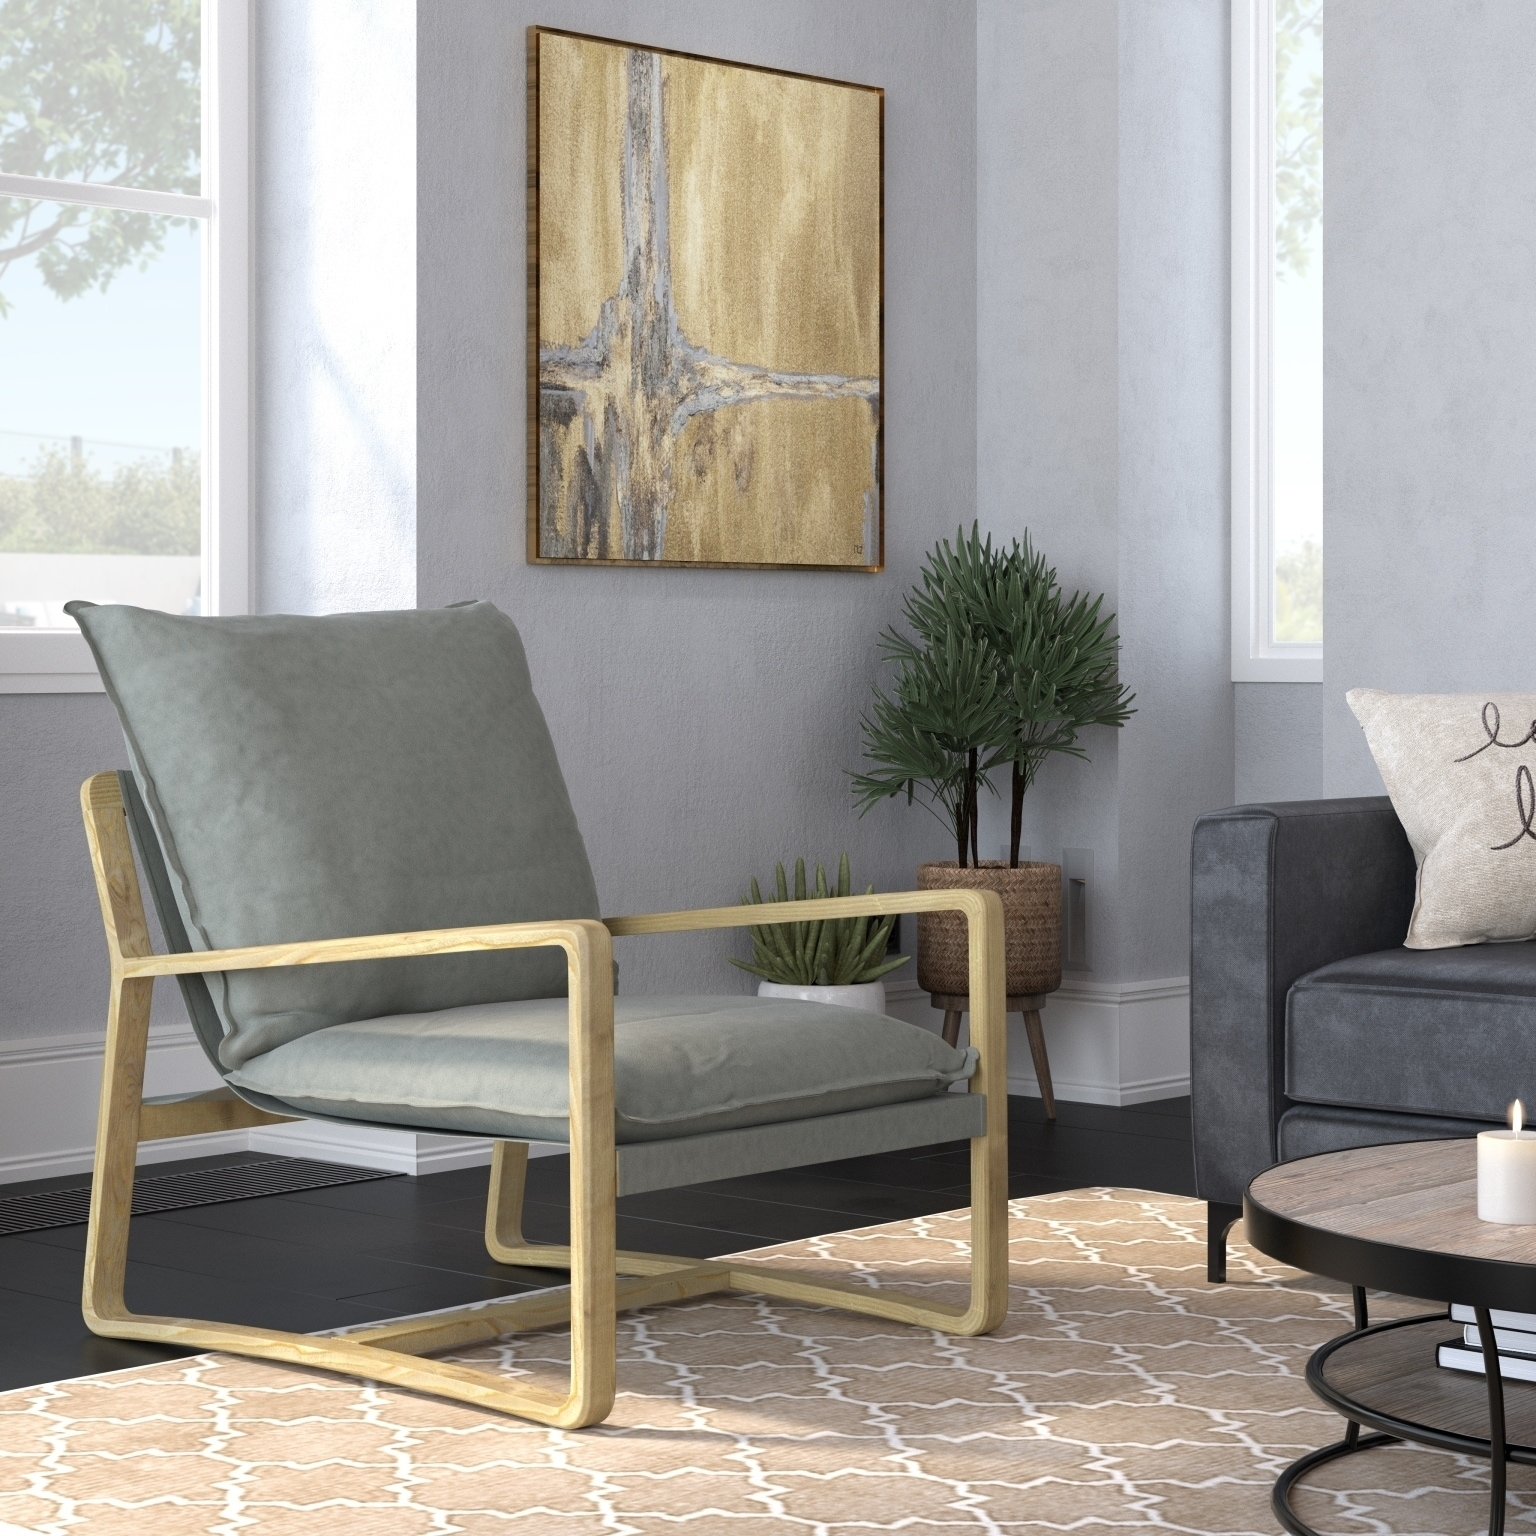 Amarantos Modern Accent Chair Living Room Lounge Chair Sofa Overstock 29626708